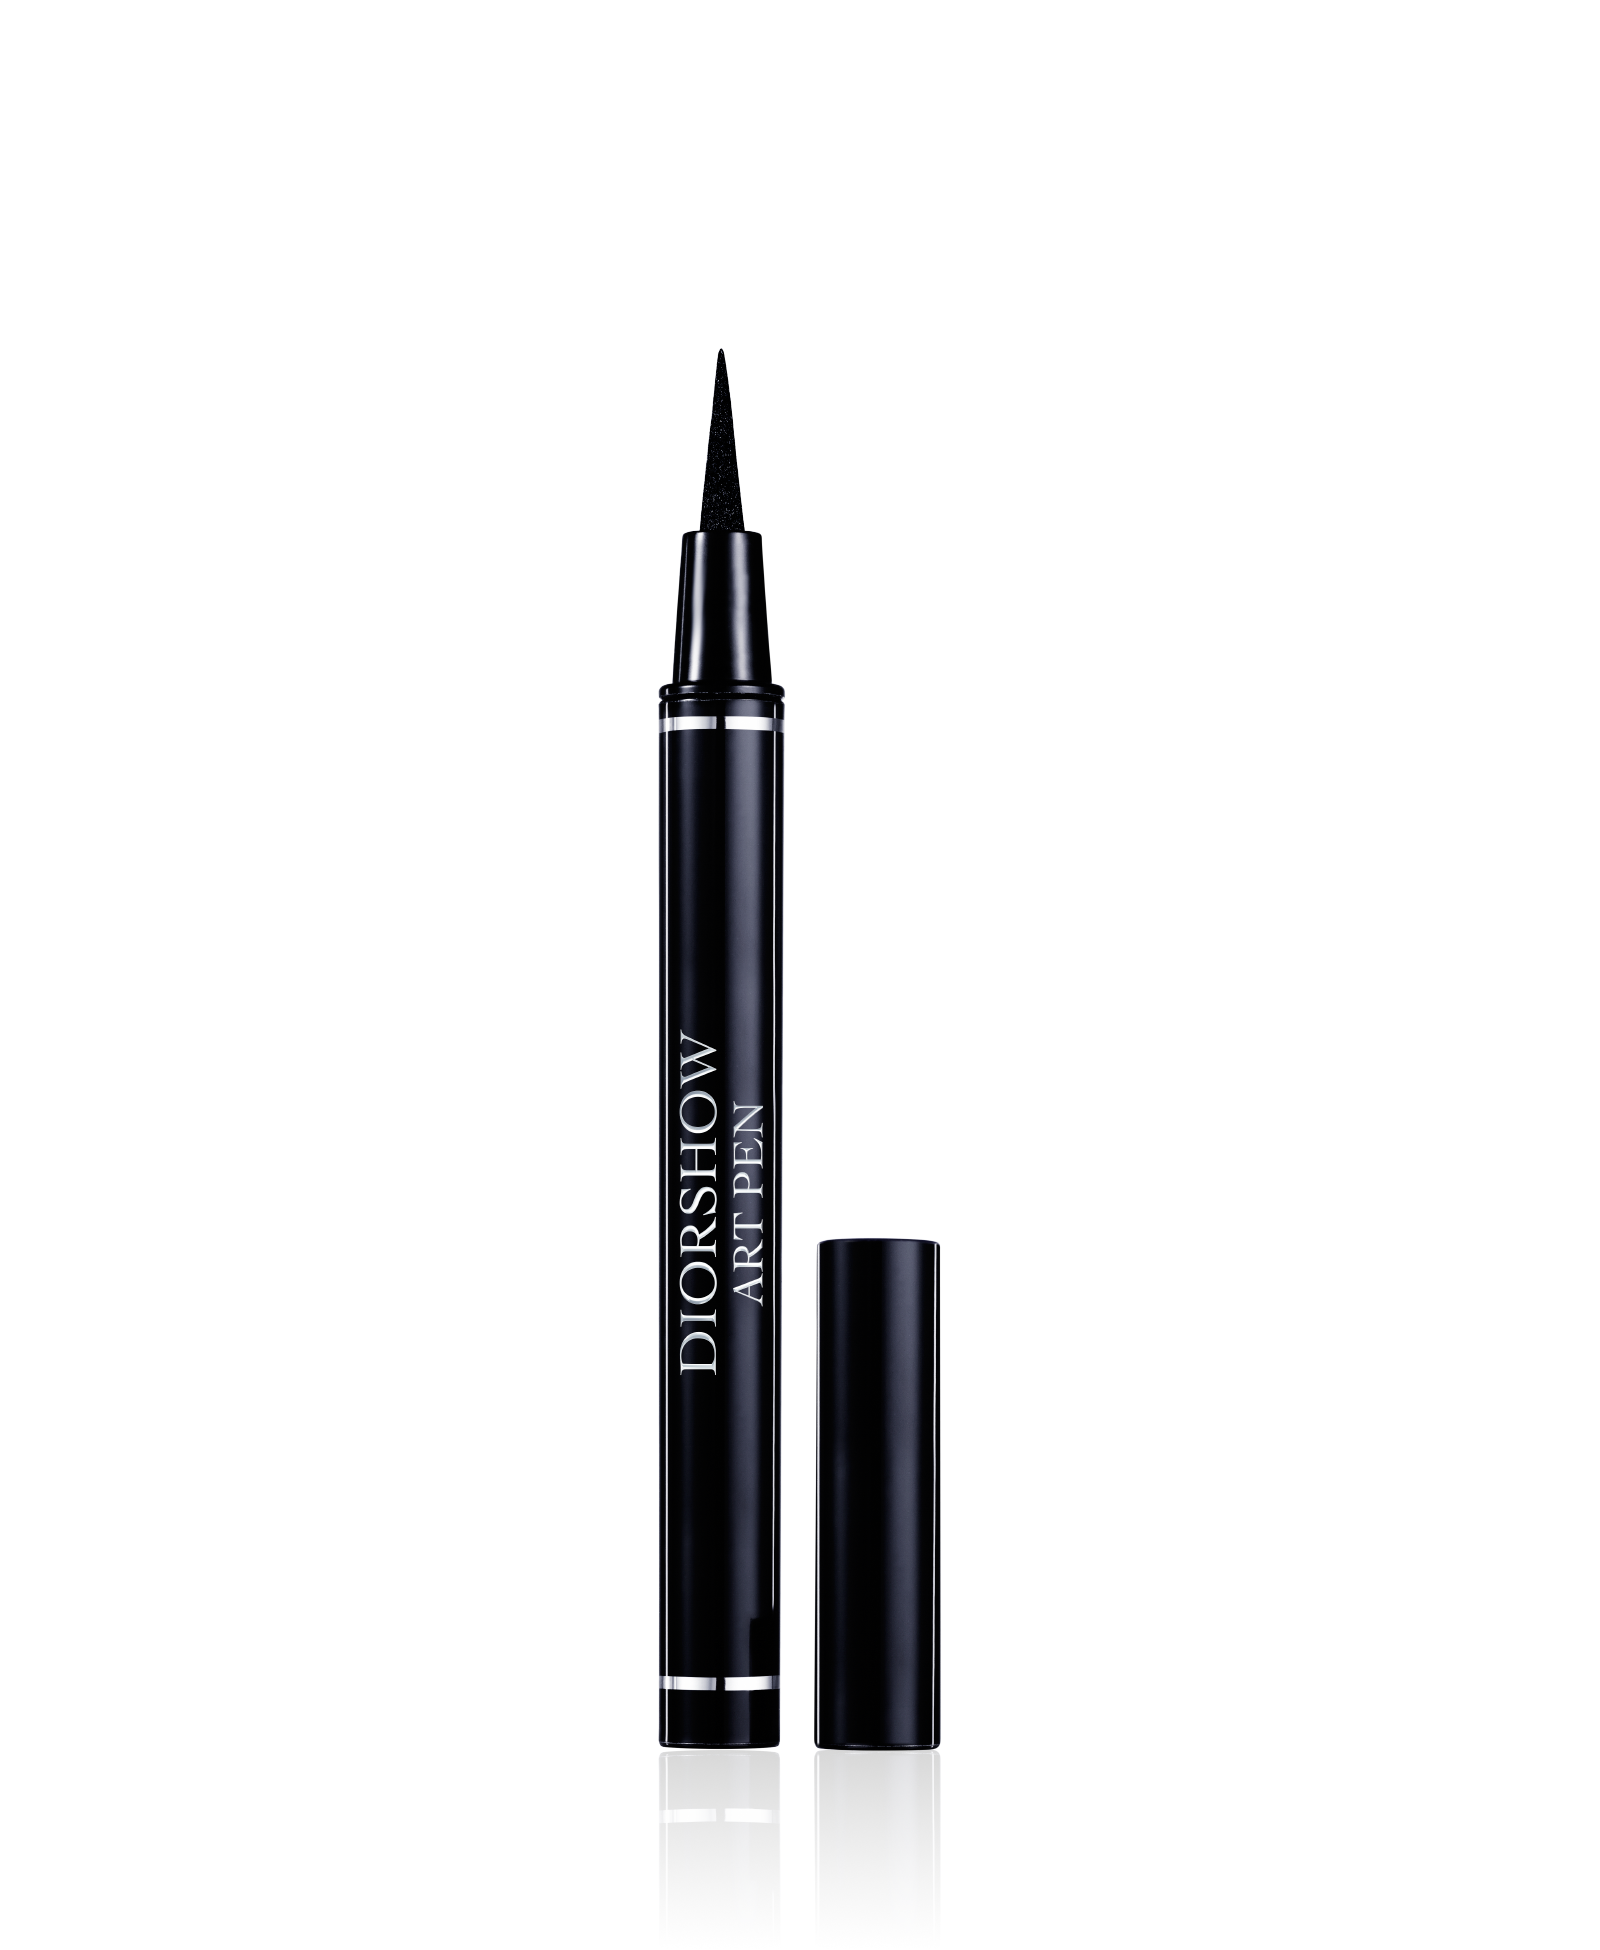 1f6378872d Discover Diorshow Art Pen by Christian Dior available in Dior ...